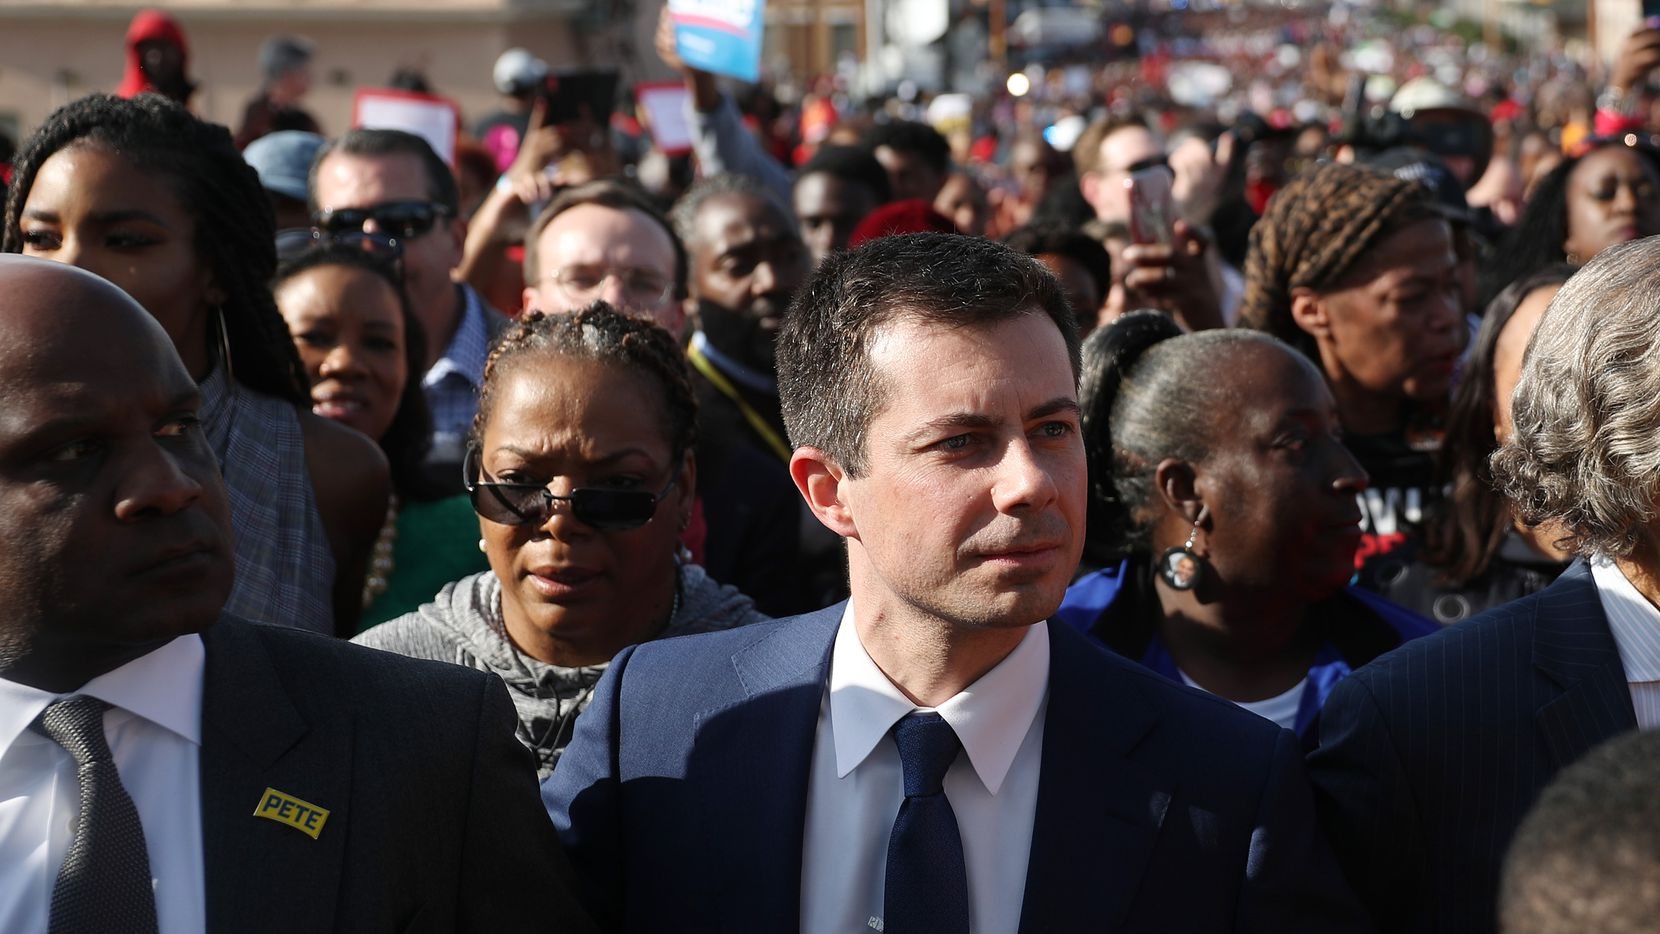 SELMA, ALABAMA - MARCH 01:  Democratic presidential candidate former South Bend, Indiana Mayor Pete Buttigieg participates in the Edmund Pettus Bridge crossing reenactment marking the 55th anniversary of Selma's Bloody Sunday on March 1, 2020 in Selma, Alabama. Some of the 2020 Democratic presidential candidates attended the Selma bridge crossing jubilee ahead of Super Tuesday. (Photo by Joe Raedle/Getty Images)